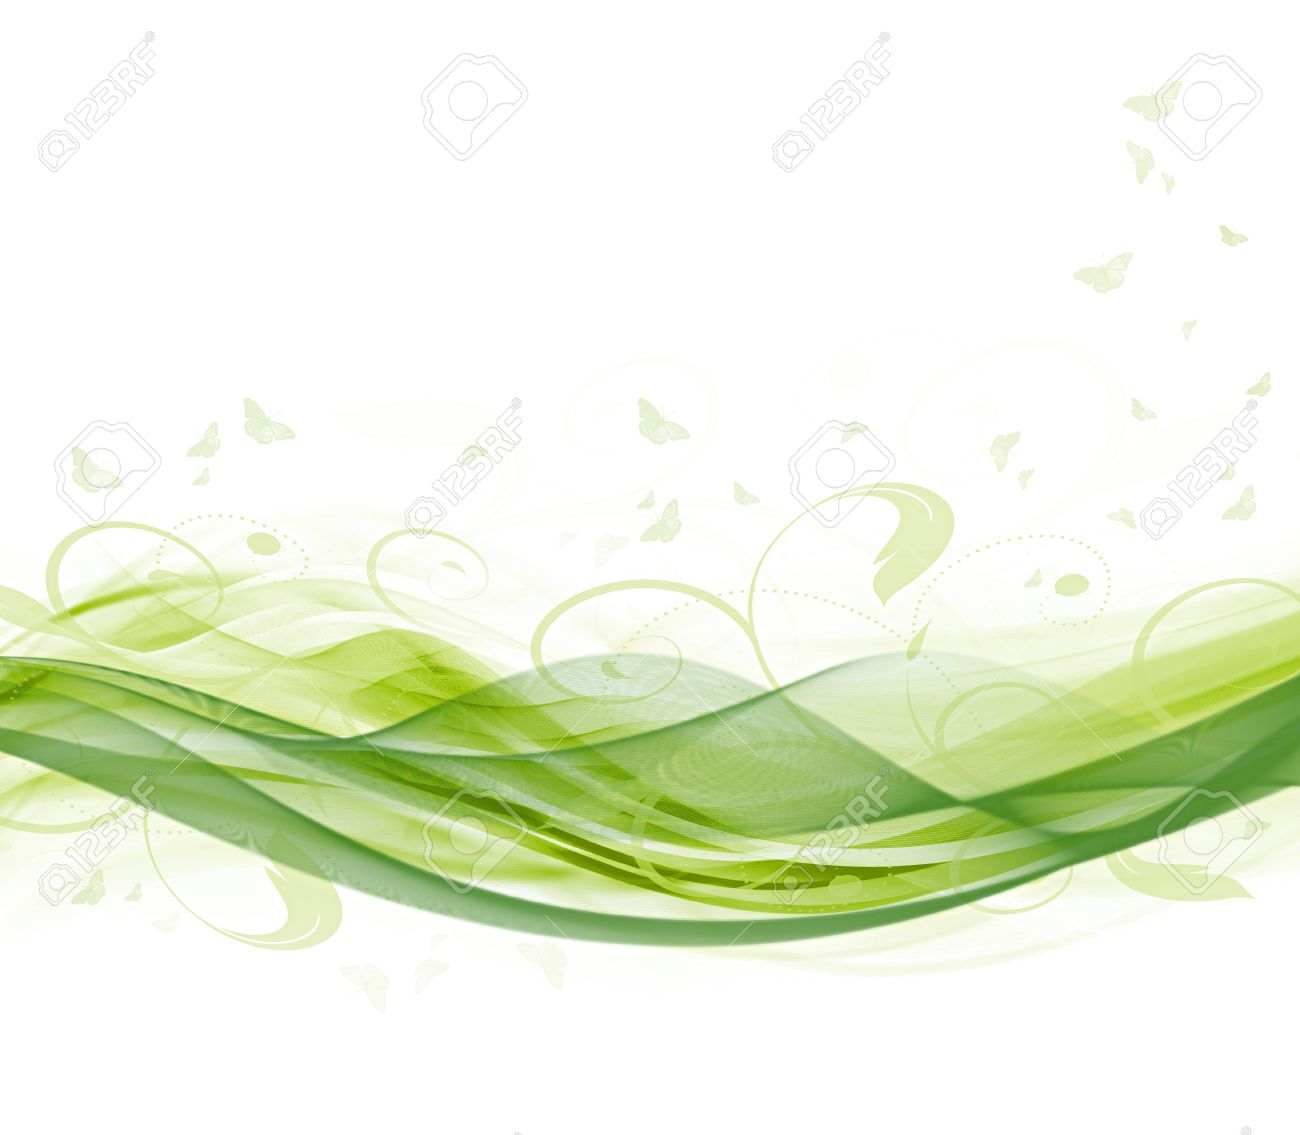 Abstract modern summer white and green background (bitmap) - 9650457